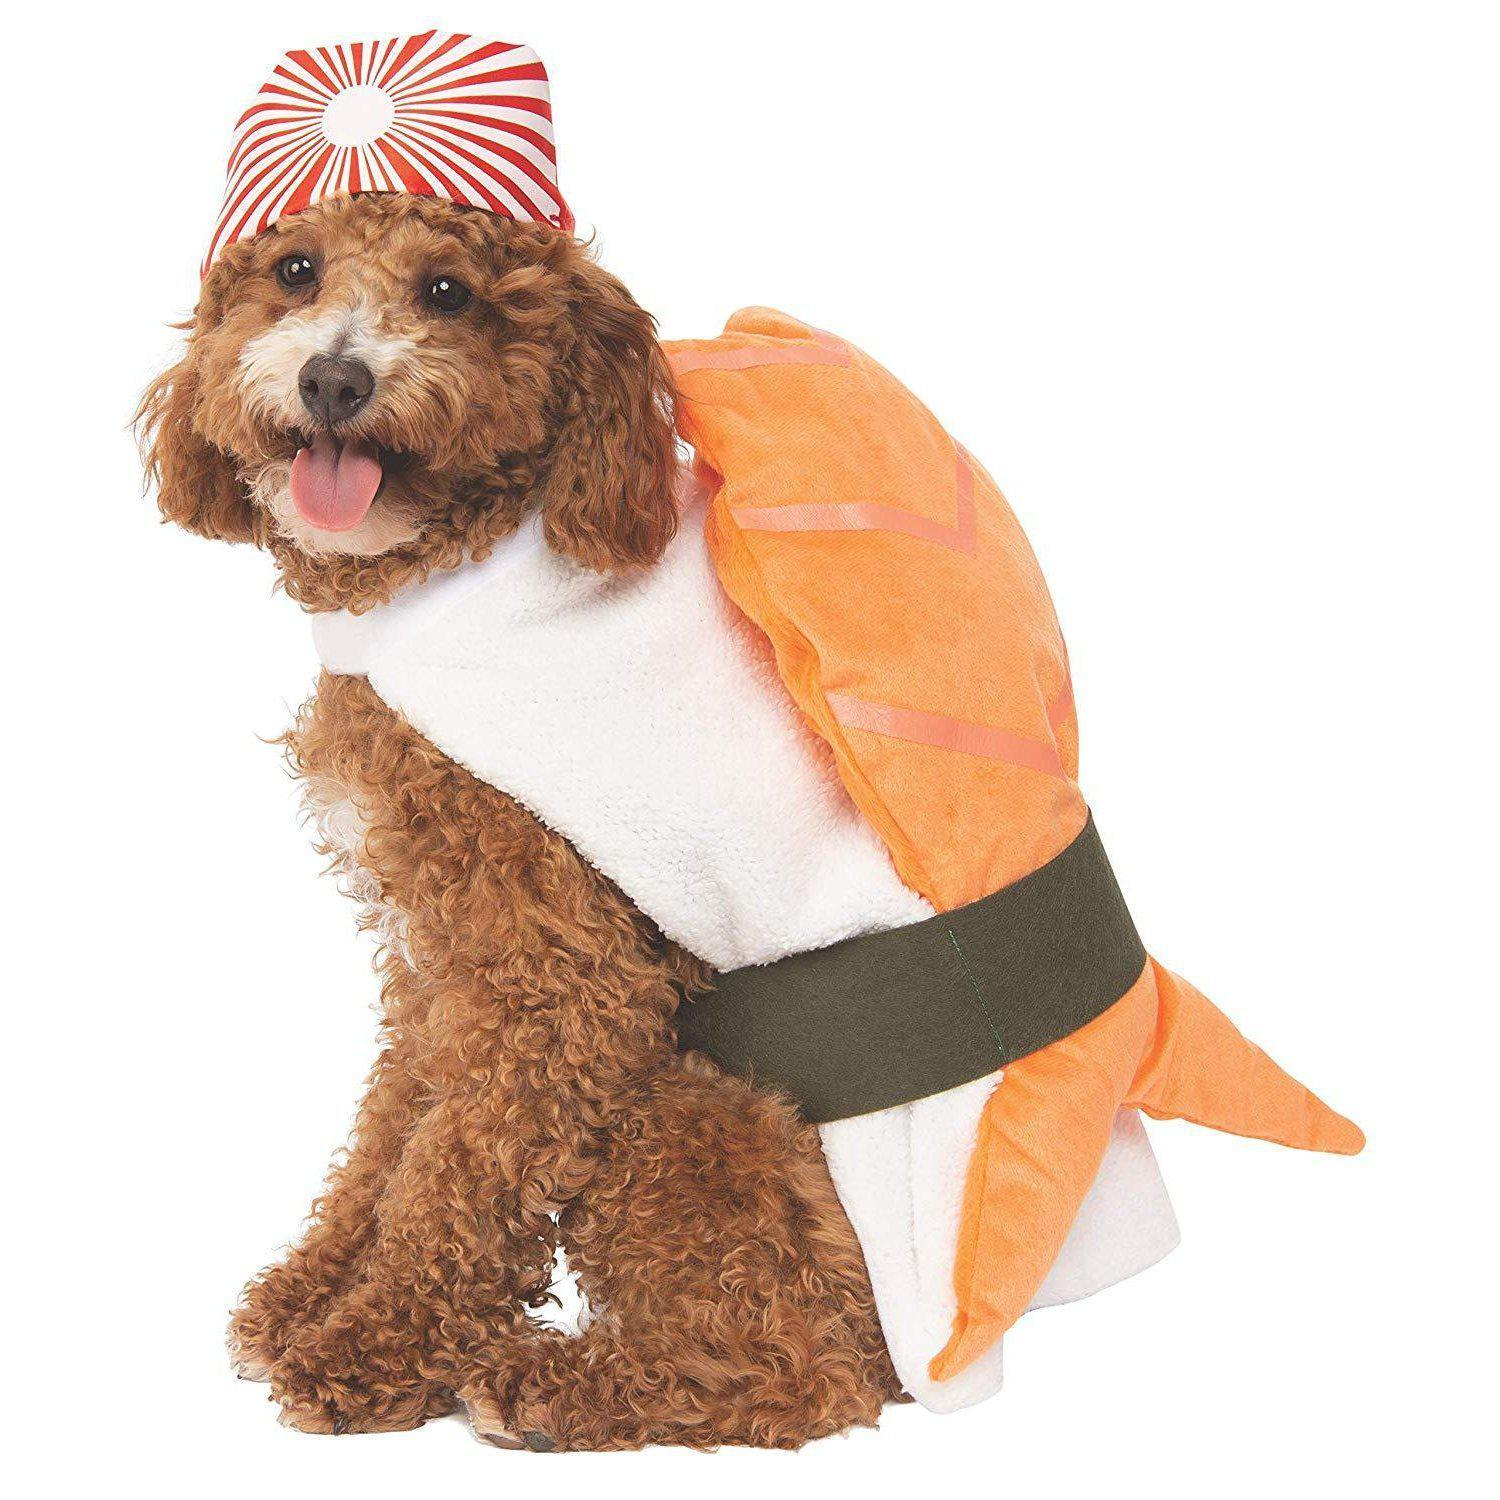 Rubies Sushi Pet Costume Meduim-DirtyFurClothing-DirtyFurClothing